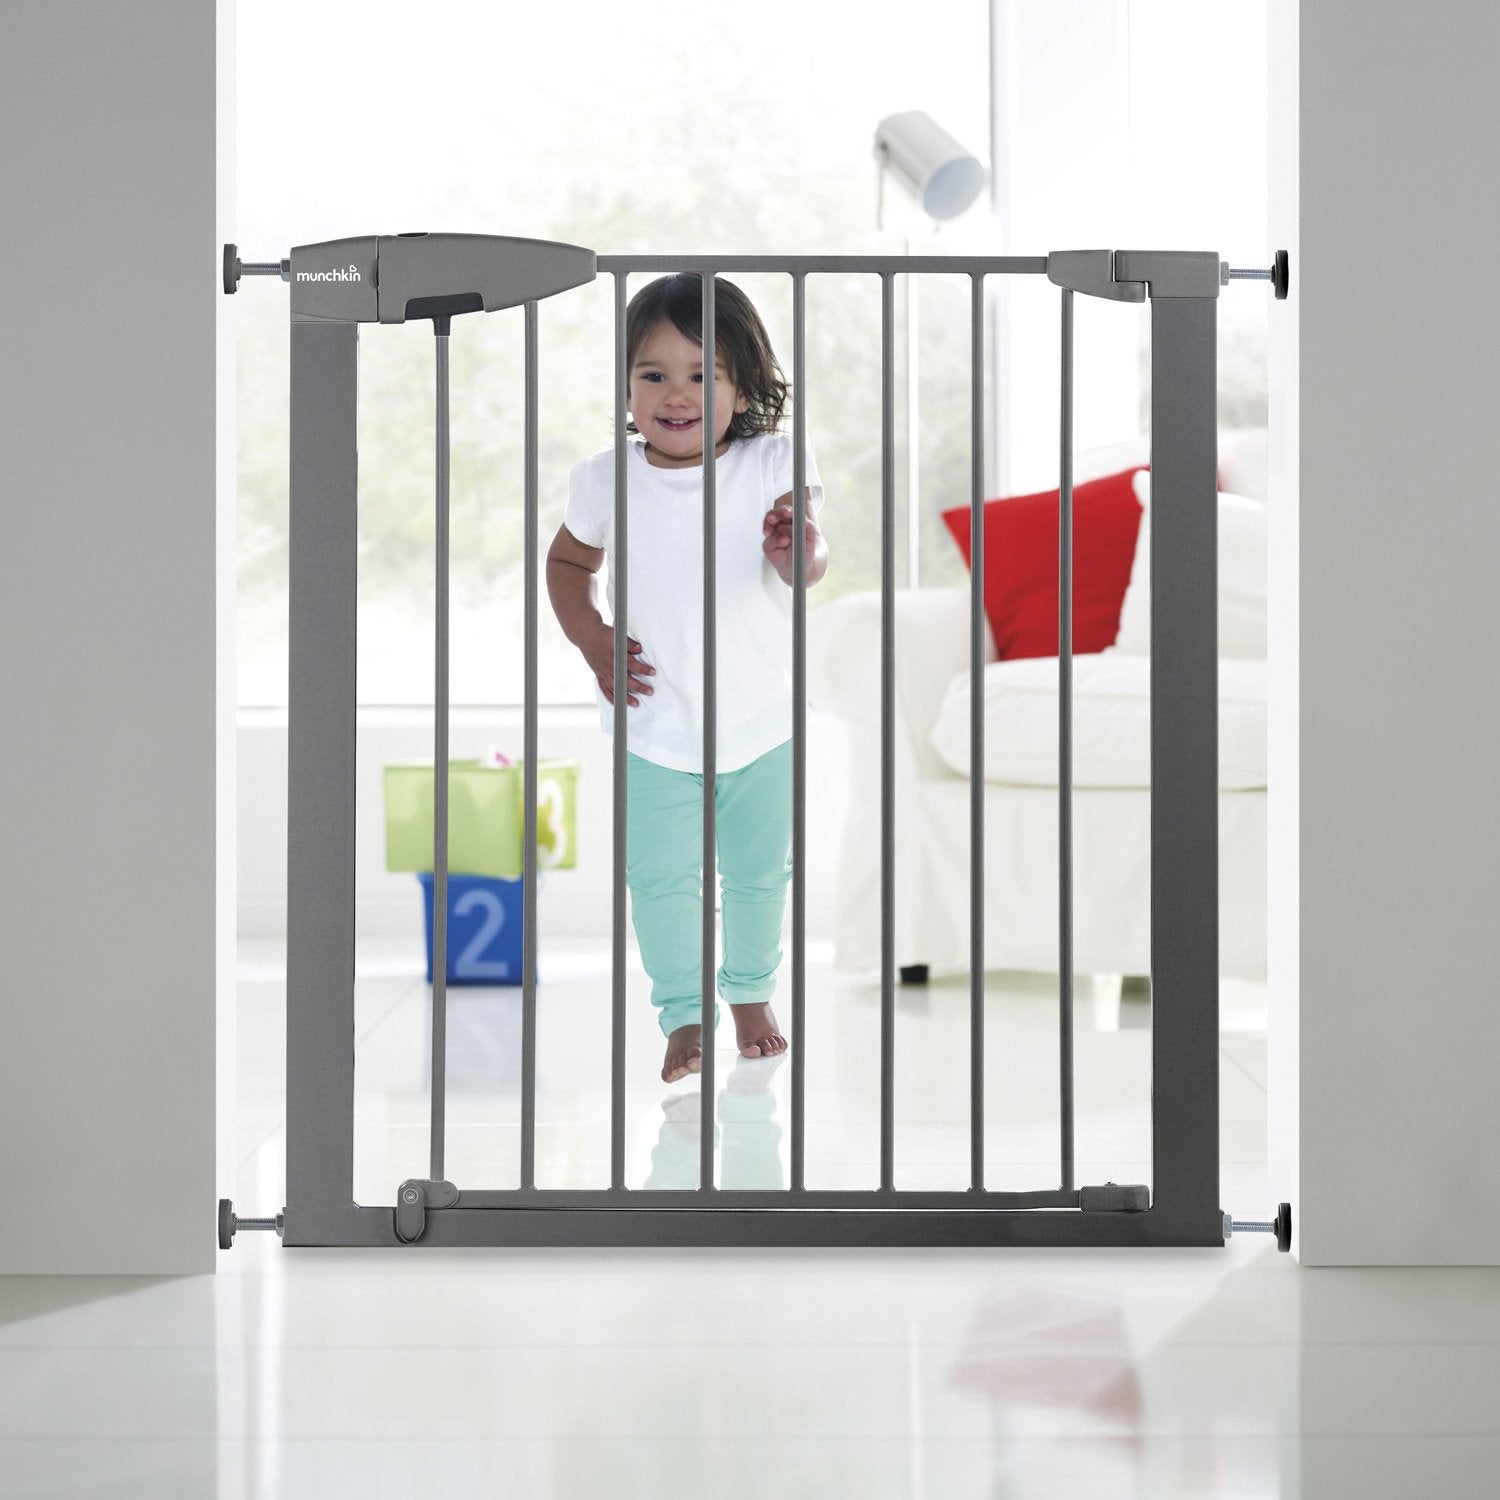 Barri re de s curit enfant munchkin portillon semi auto for Barriere de securite pour escalier helicoidale